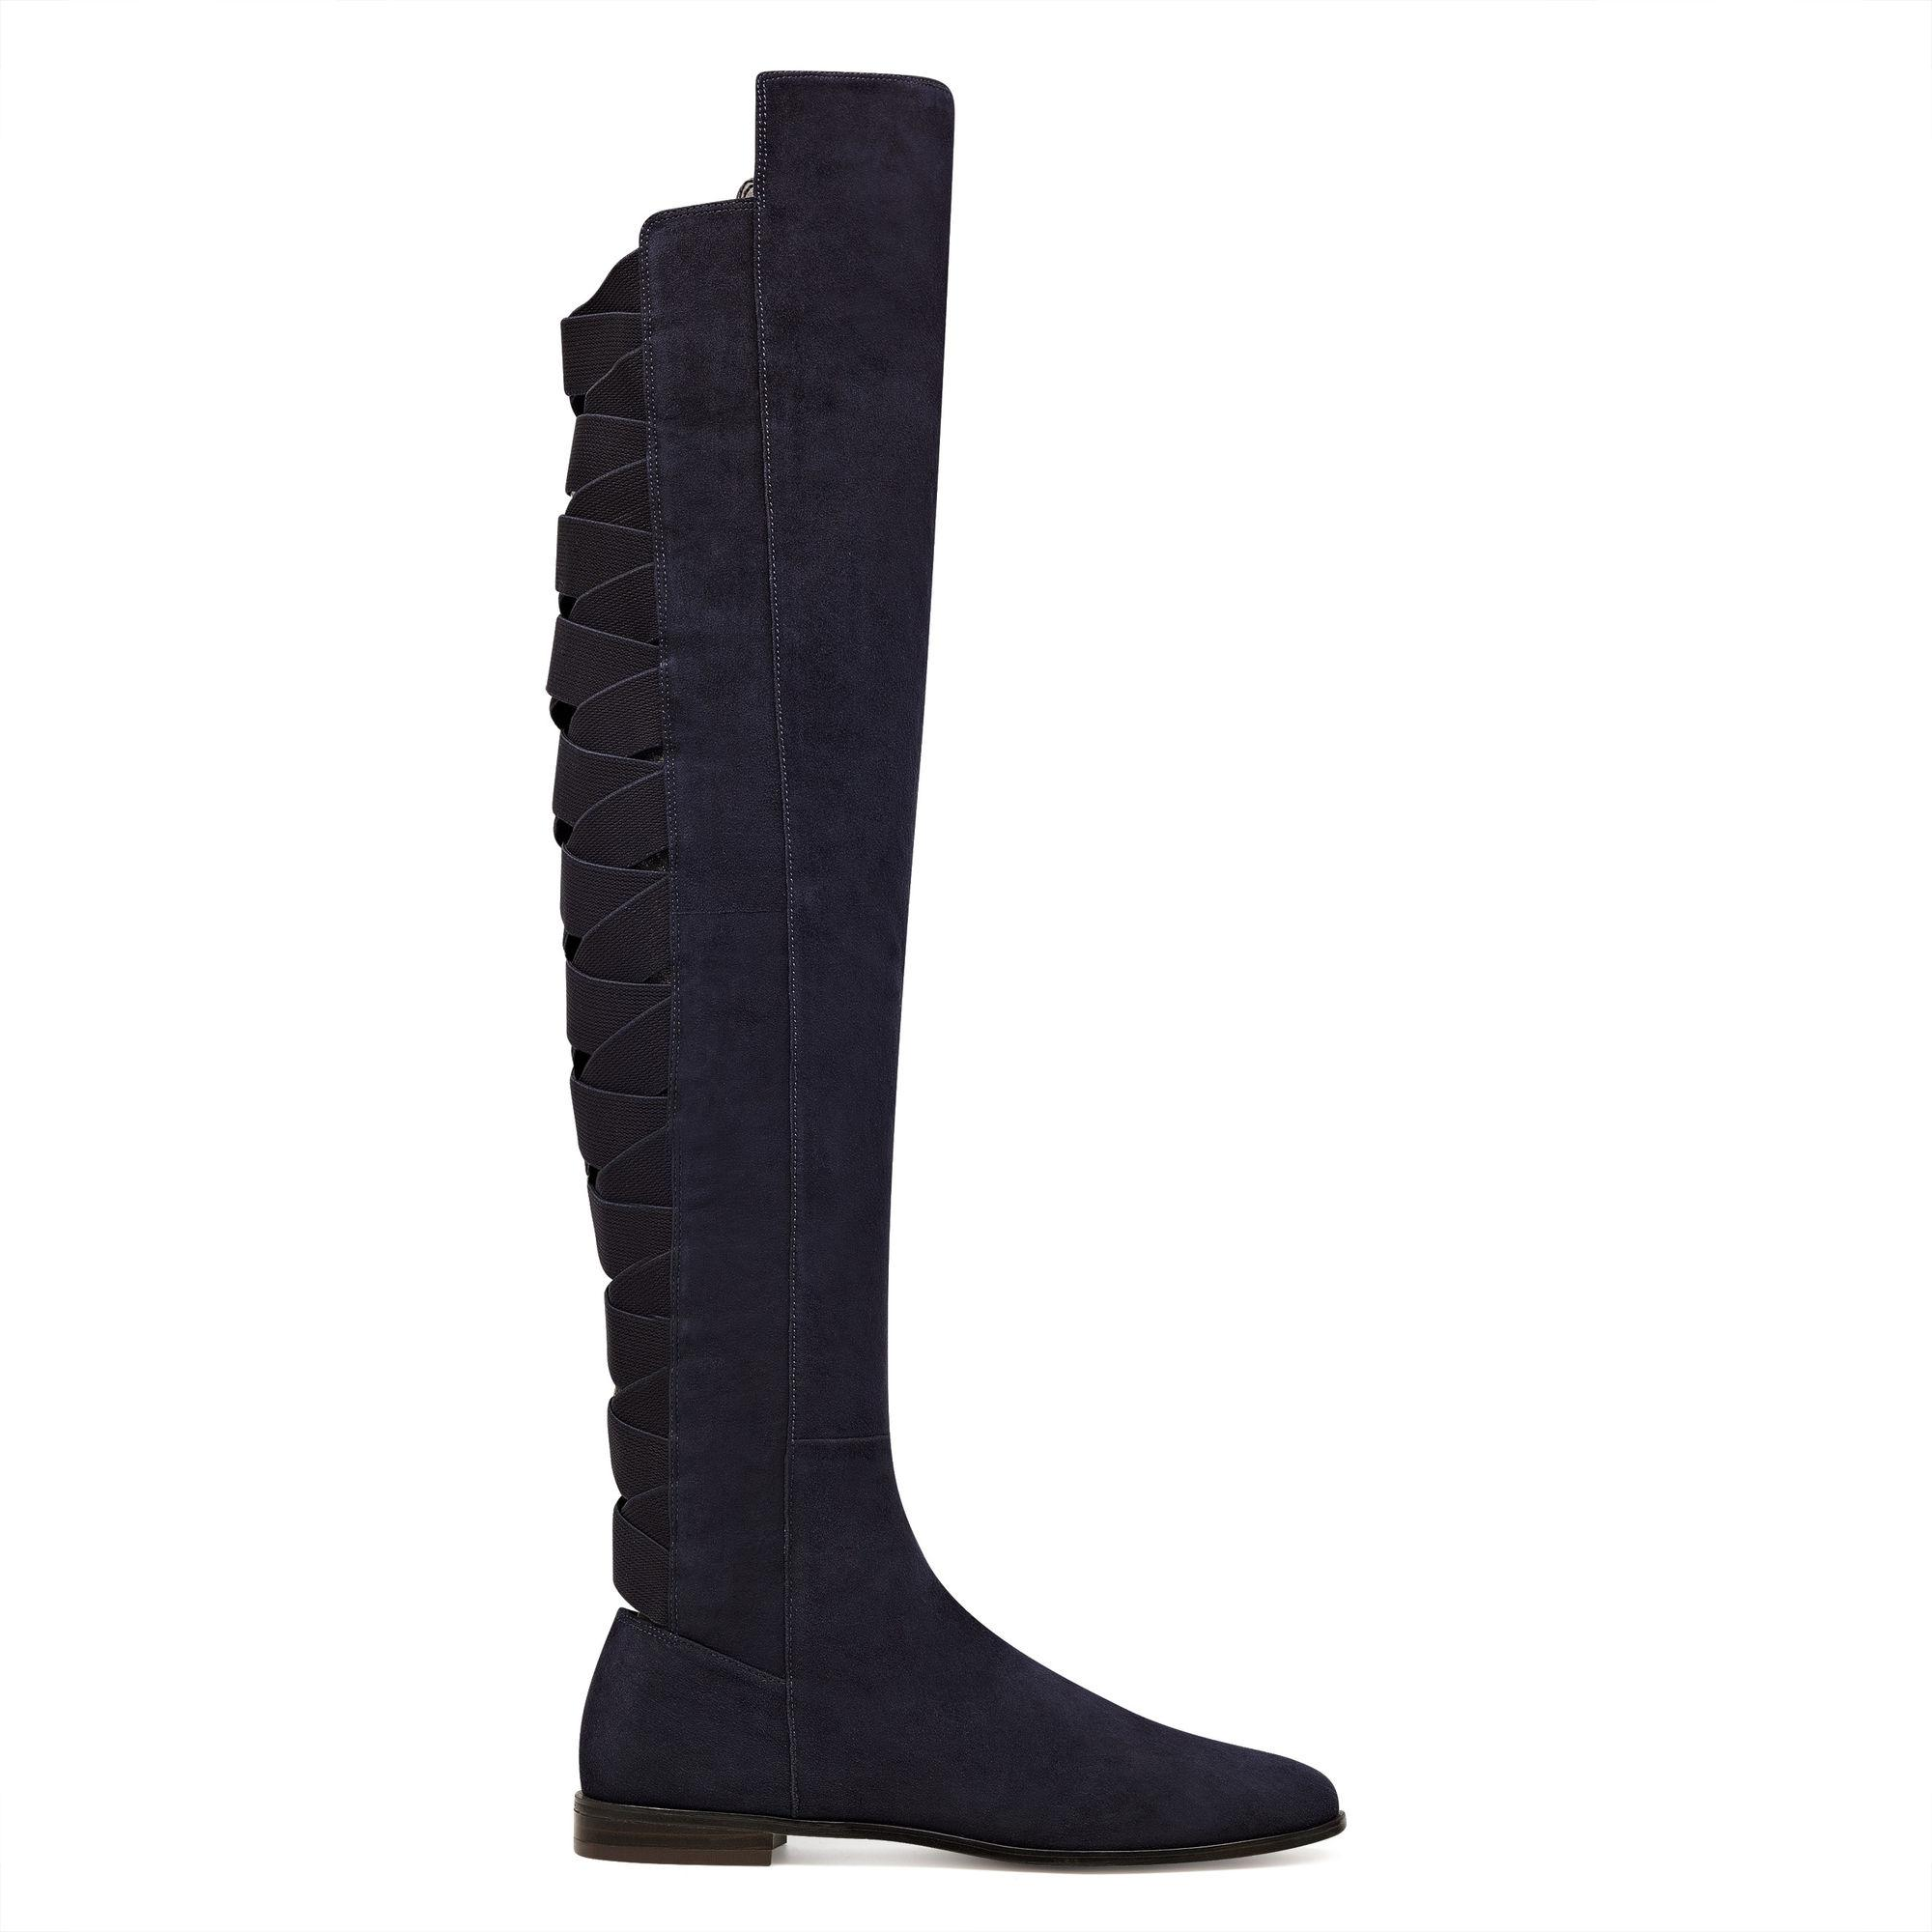 757b4d9dbdf Lyst - Nine West Eltynn Over The Knee Boots in Blue